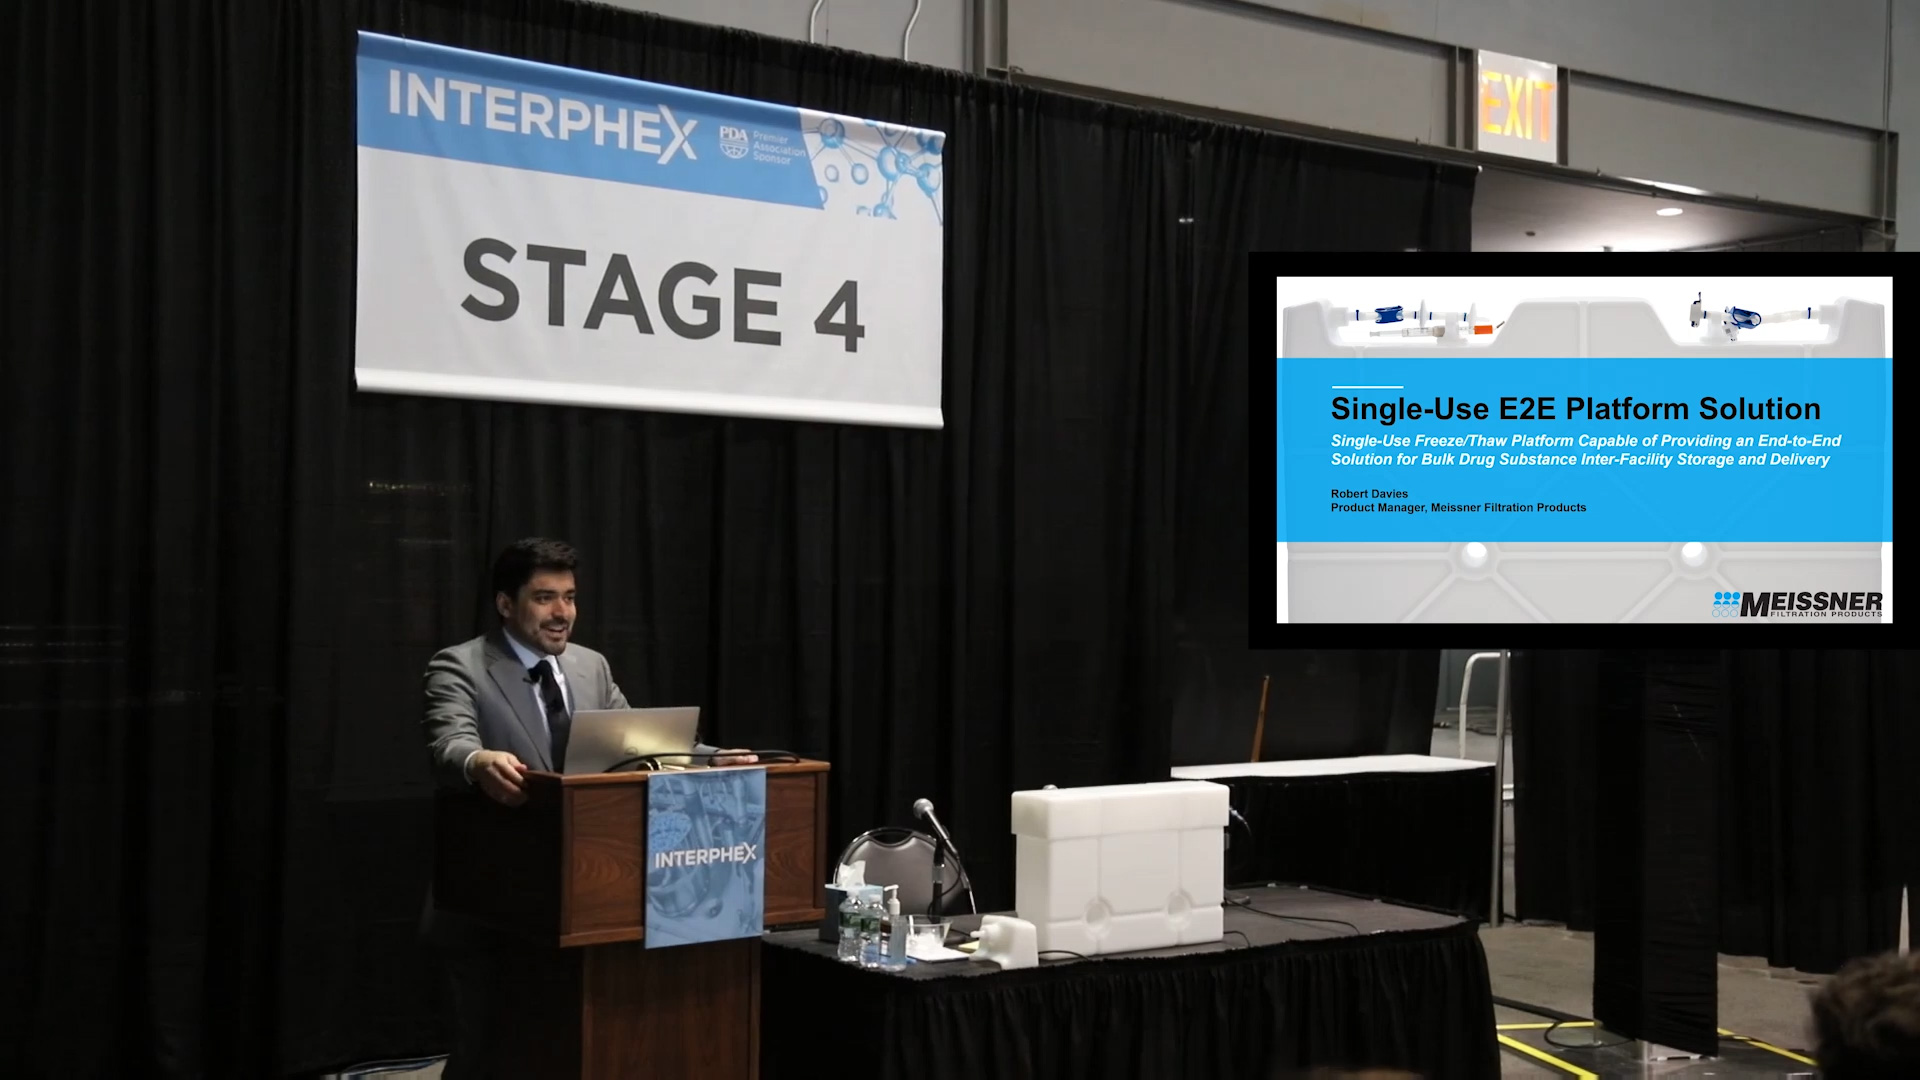 CryoVault Presentation at INTERPHEX 2019